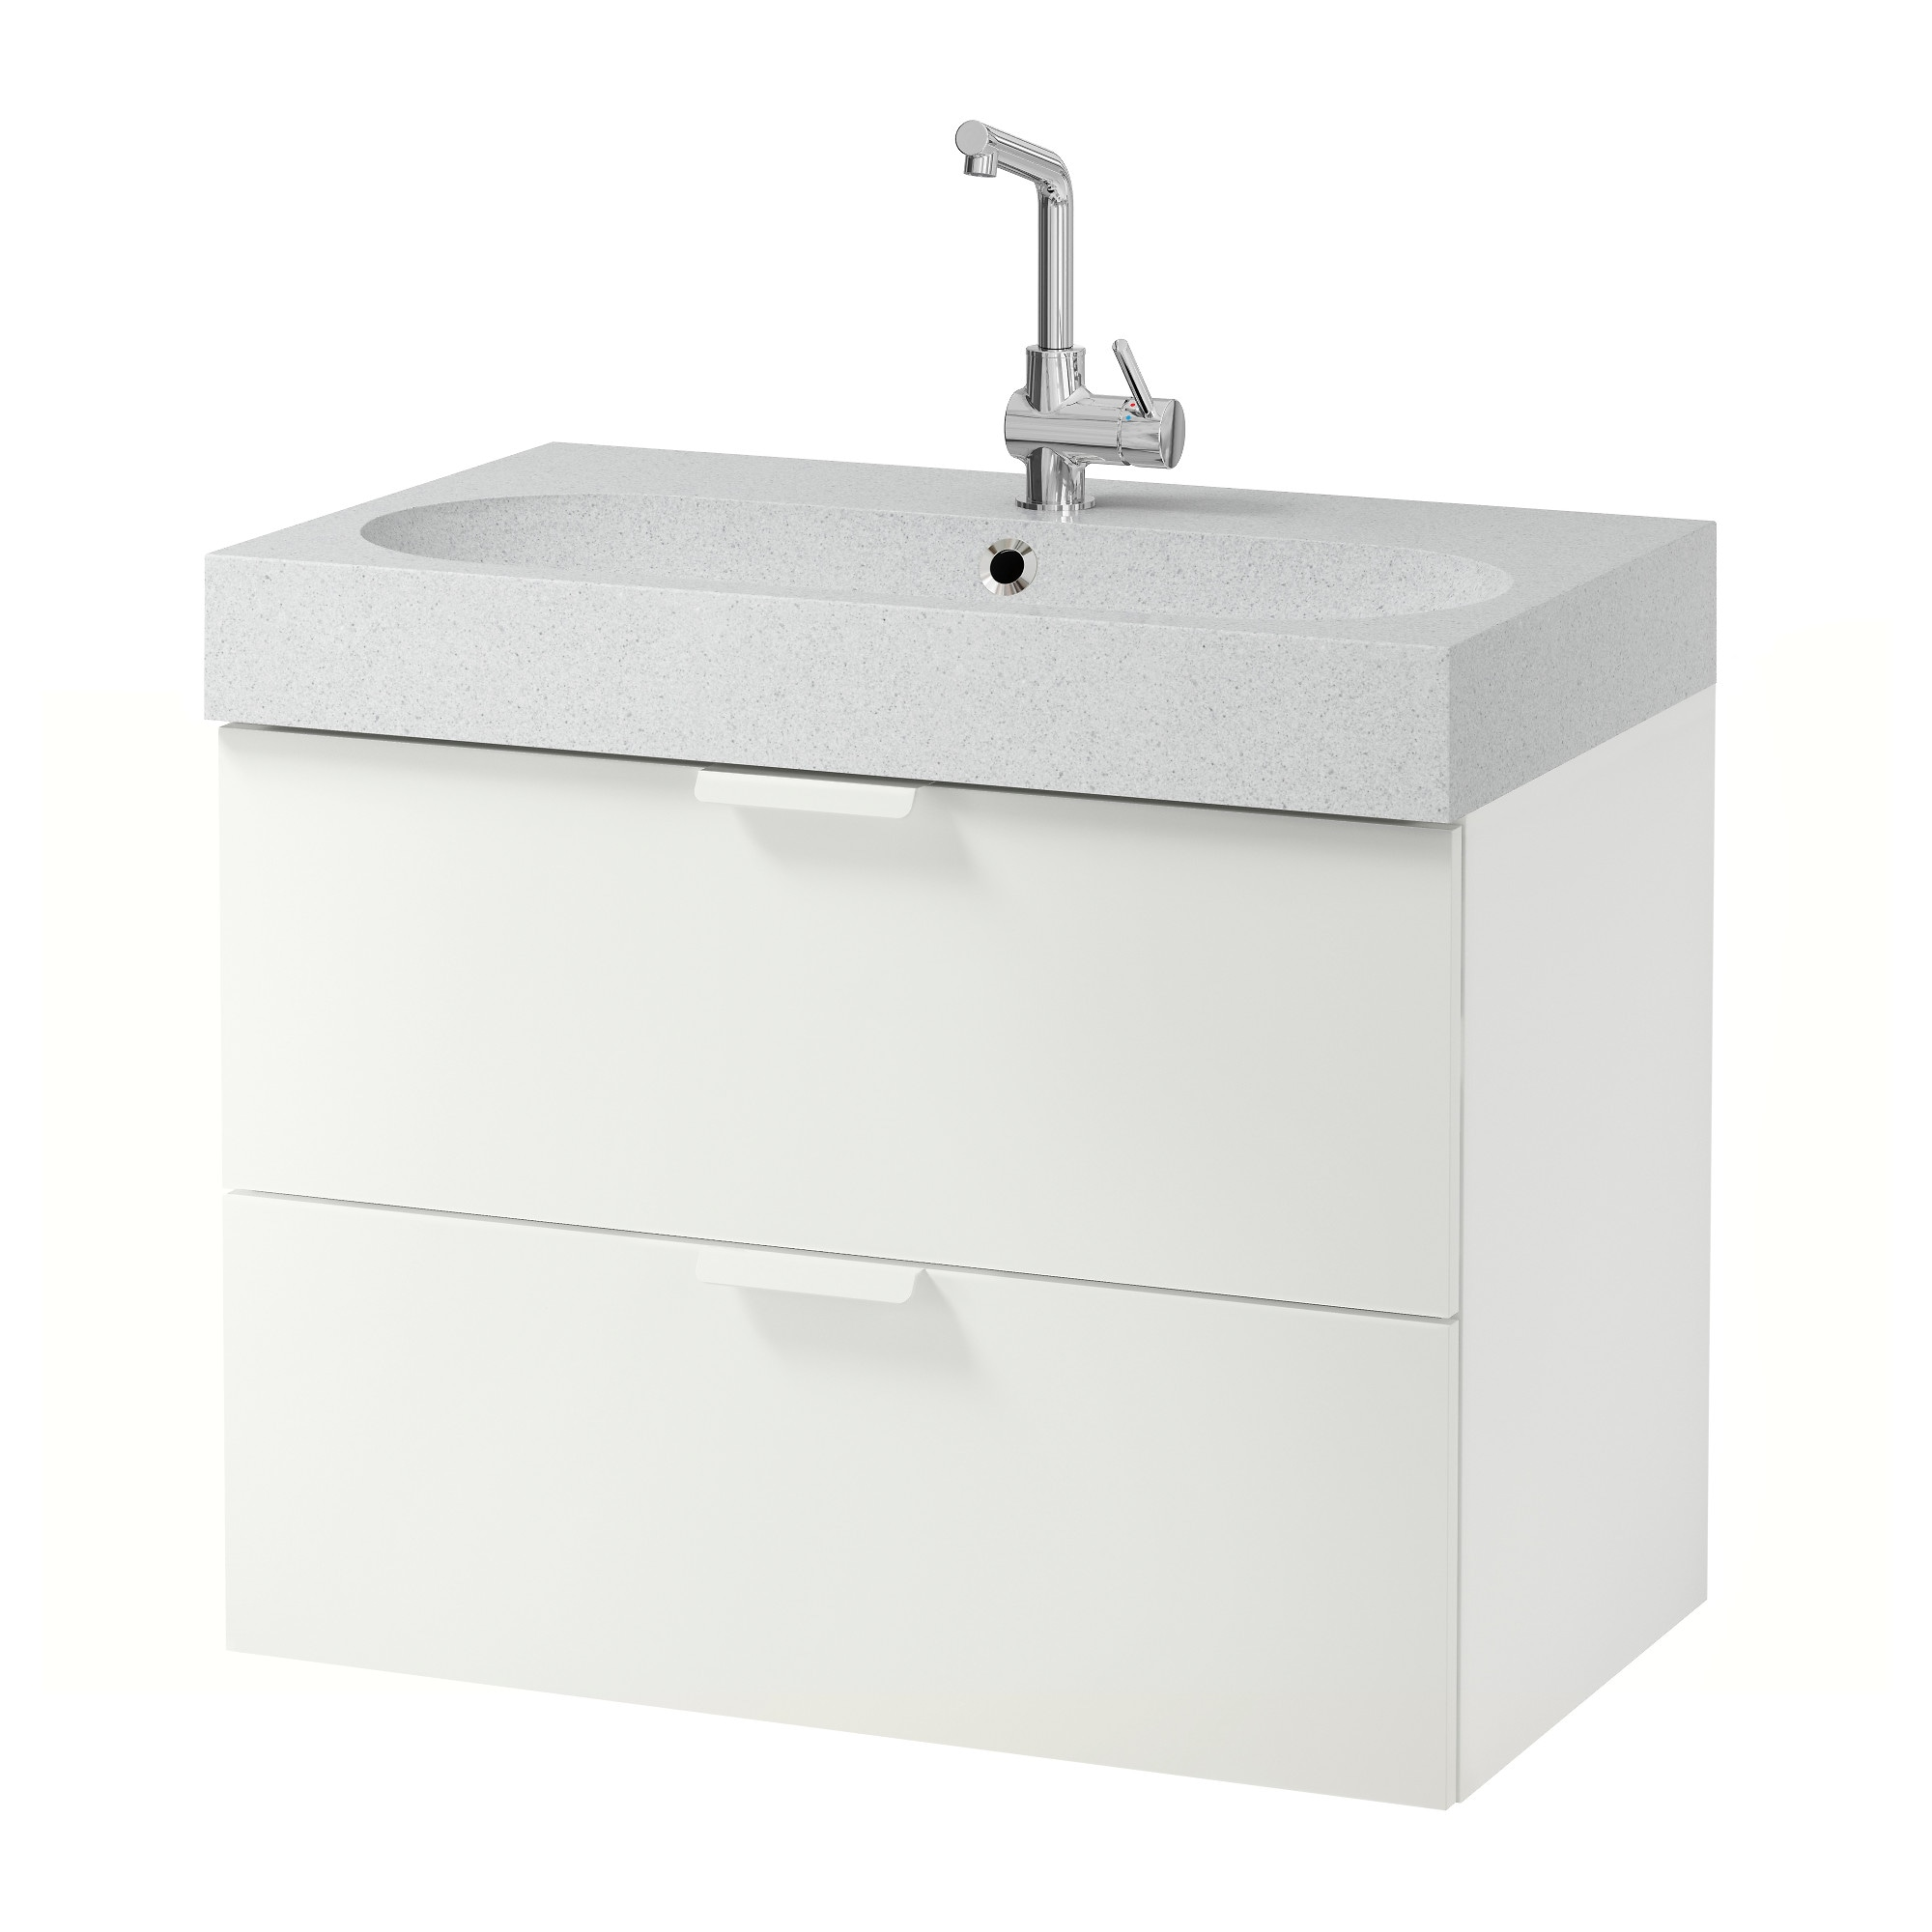 Idees de carreaux mur la cuisine moderne for Meubles lavabo ikea